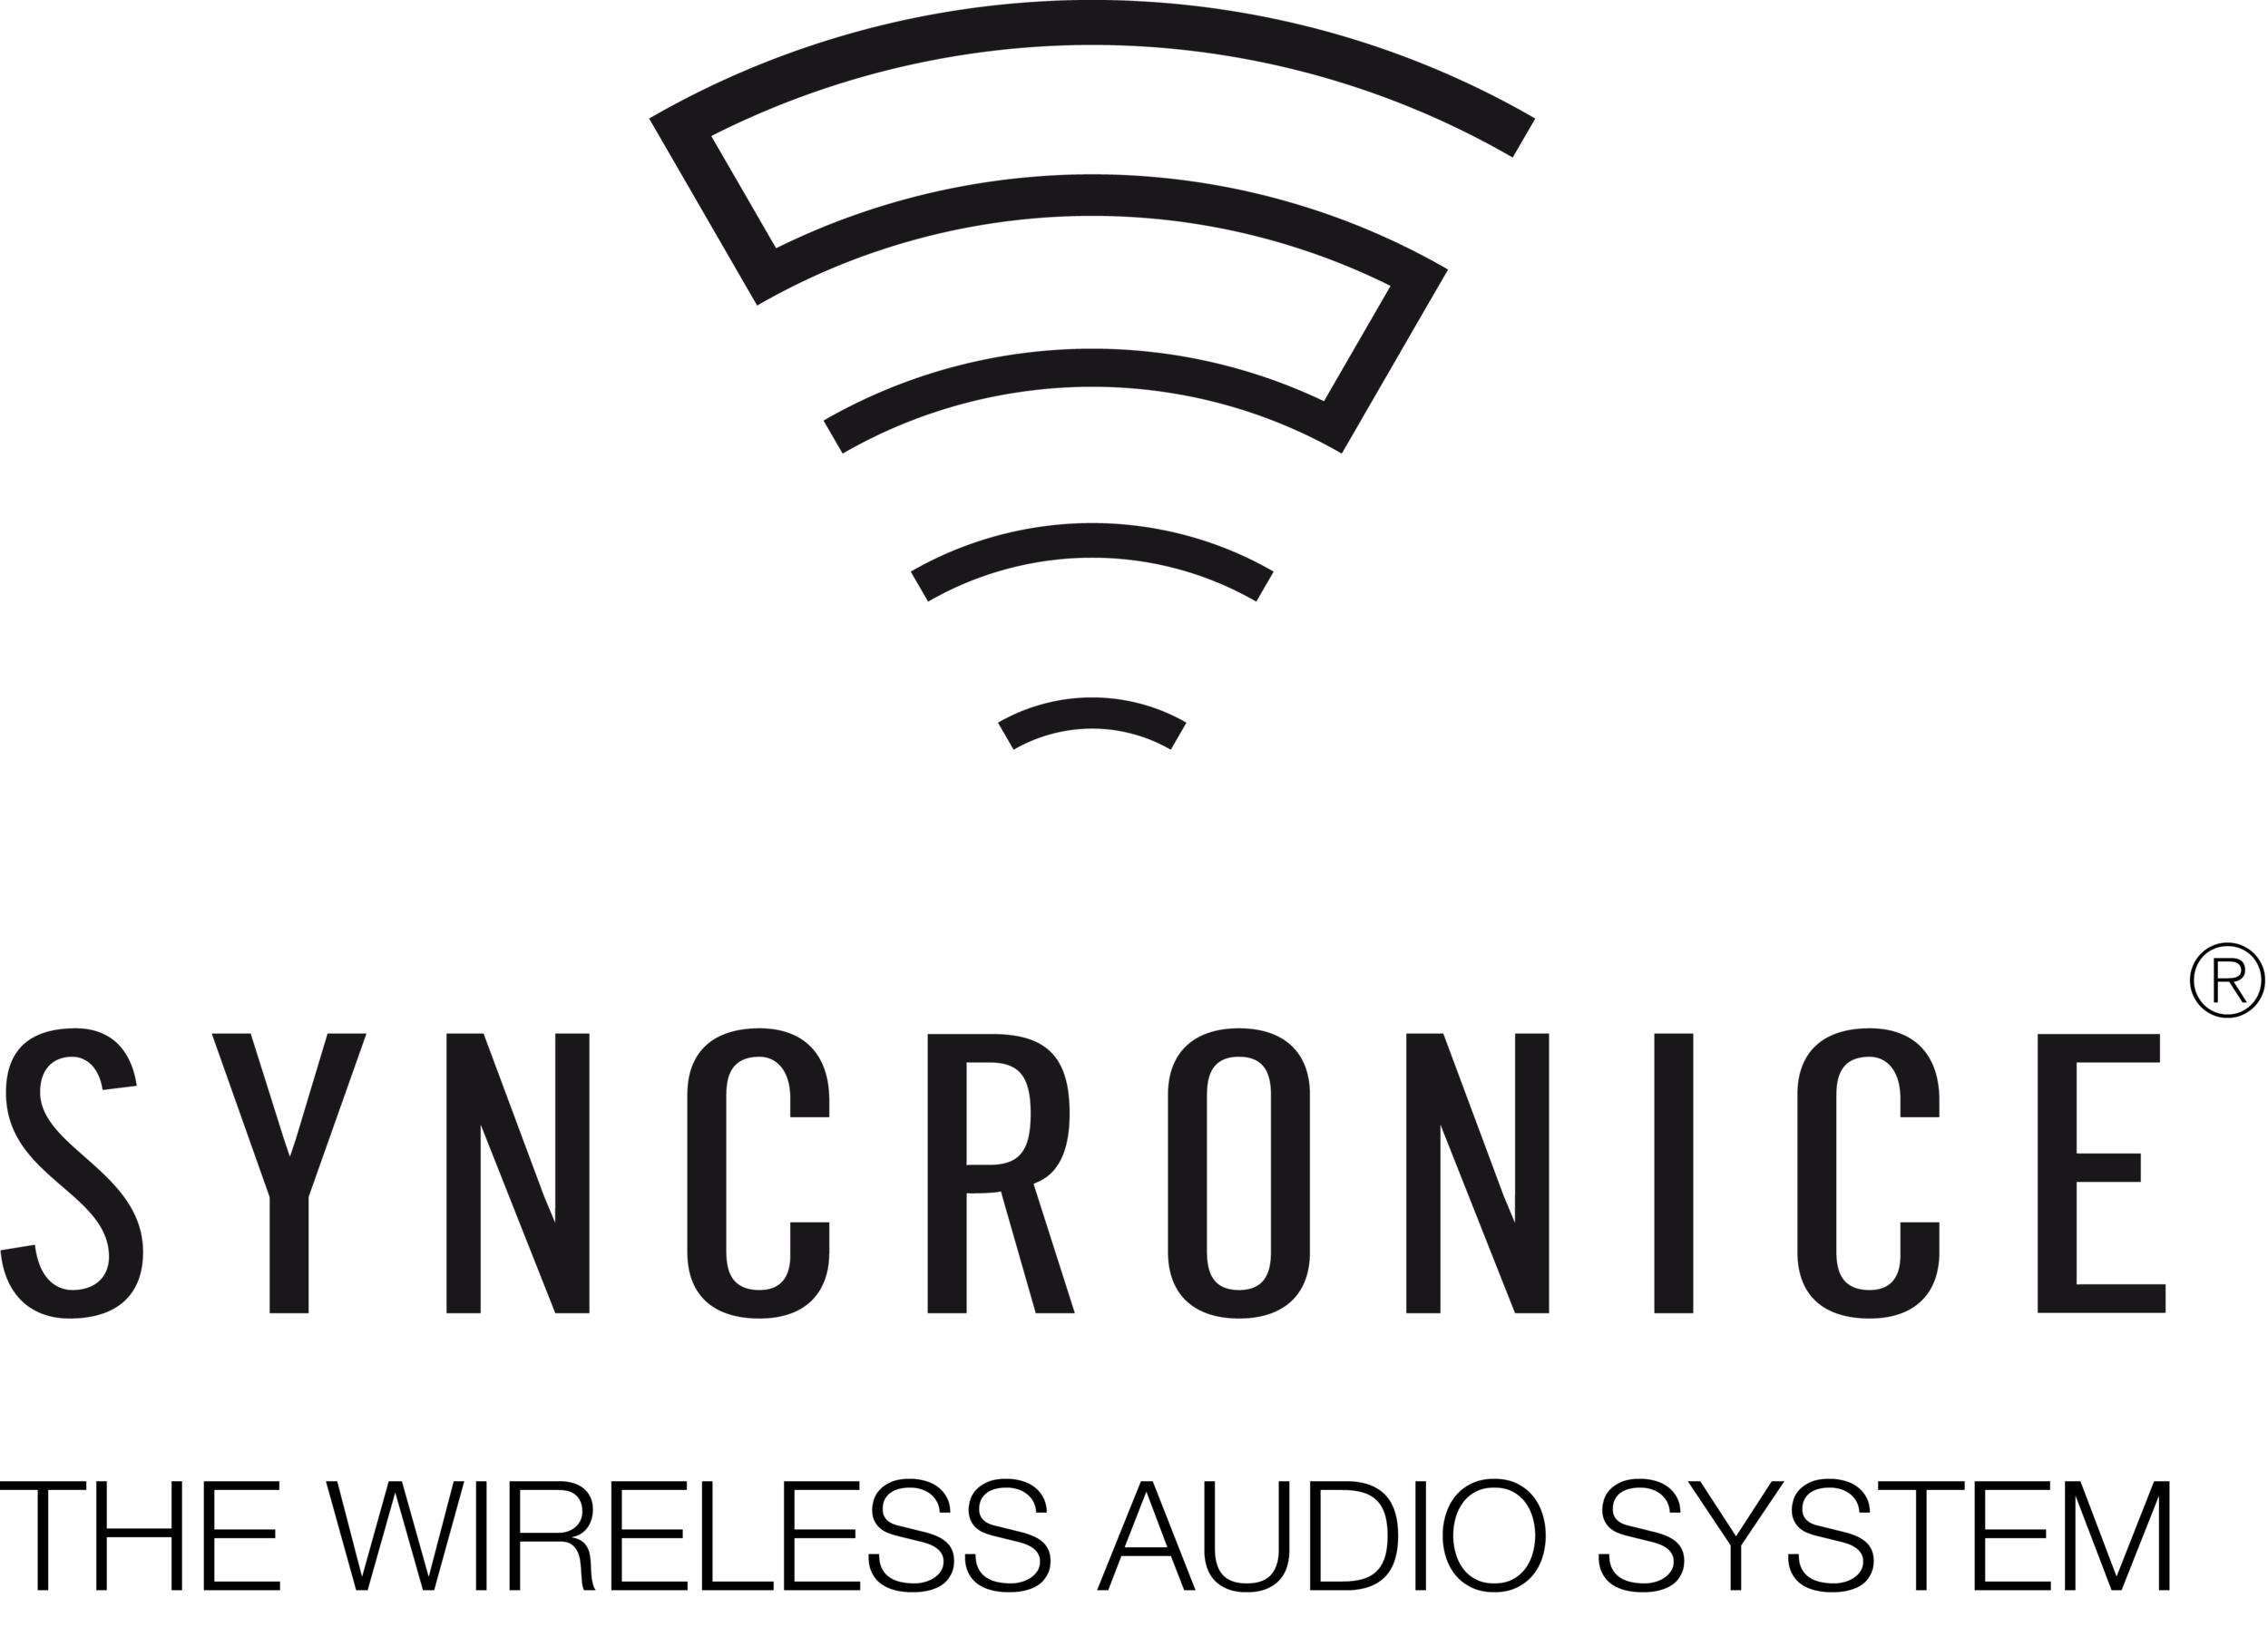 syncronice-logo-registered-claim.png